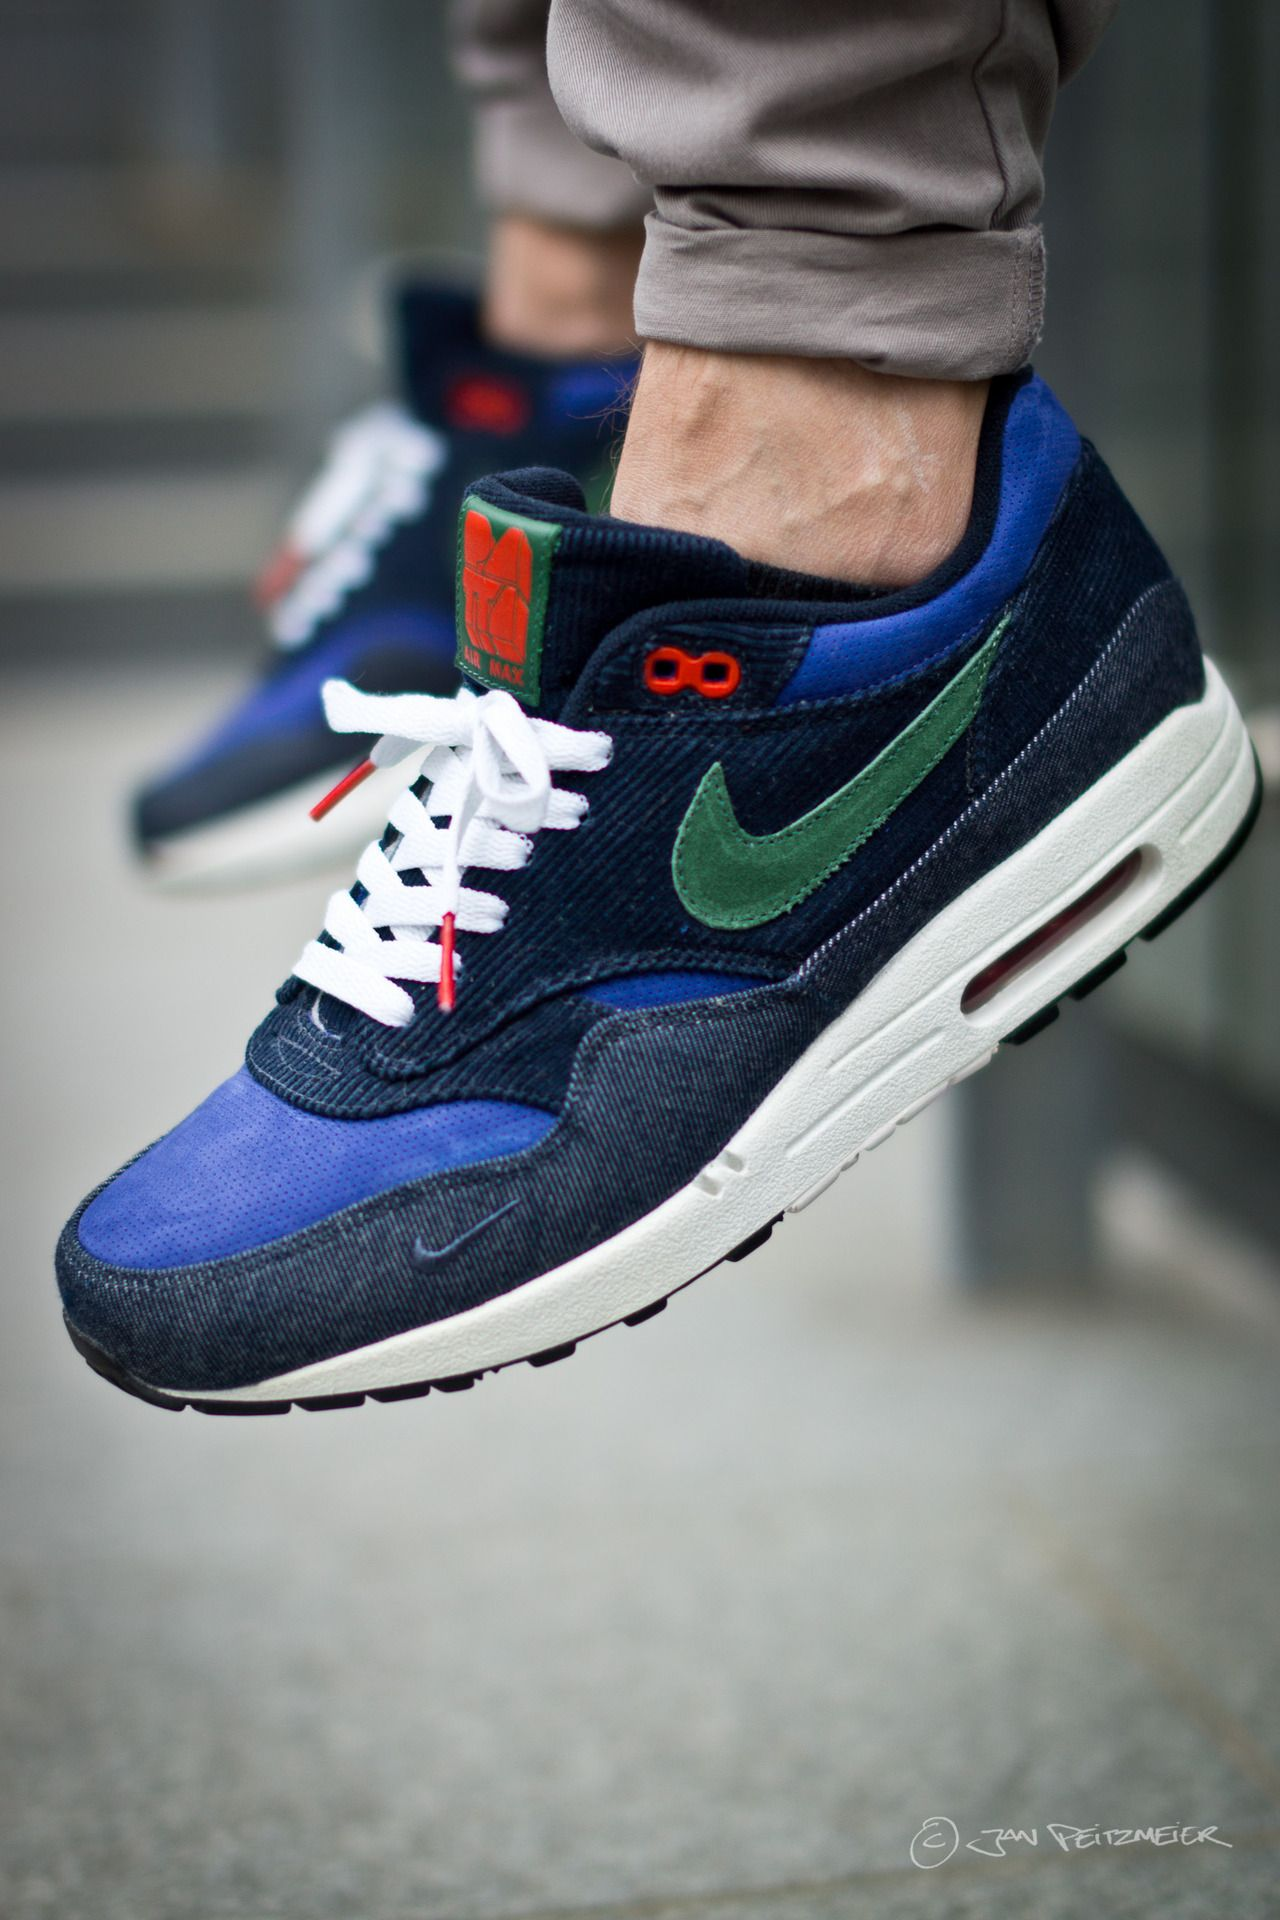 qzfbb 1000+ images about Nike air max on Pinterest | Nike air max, Air